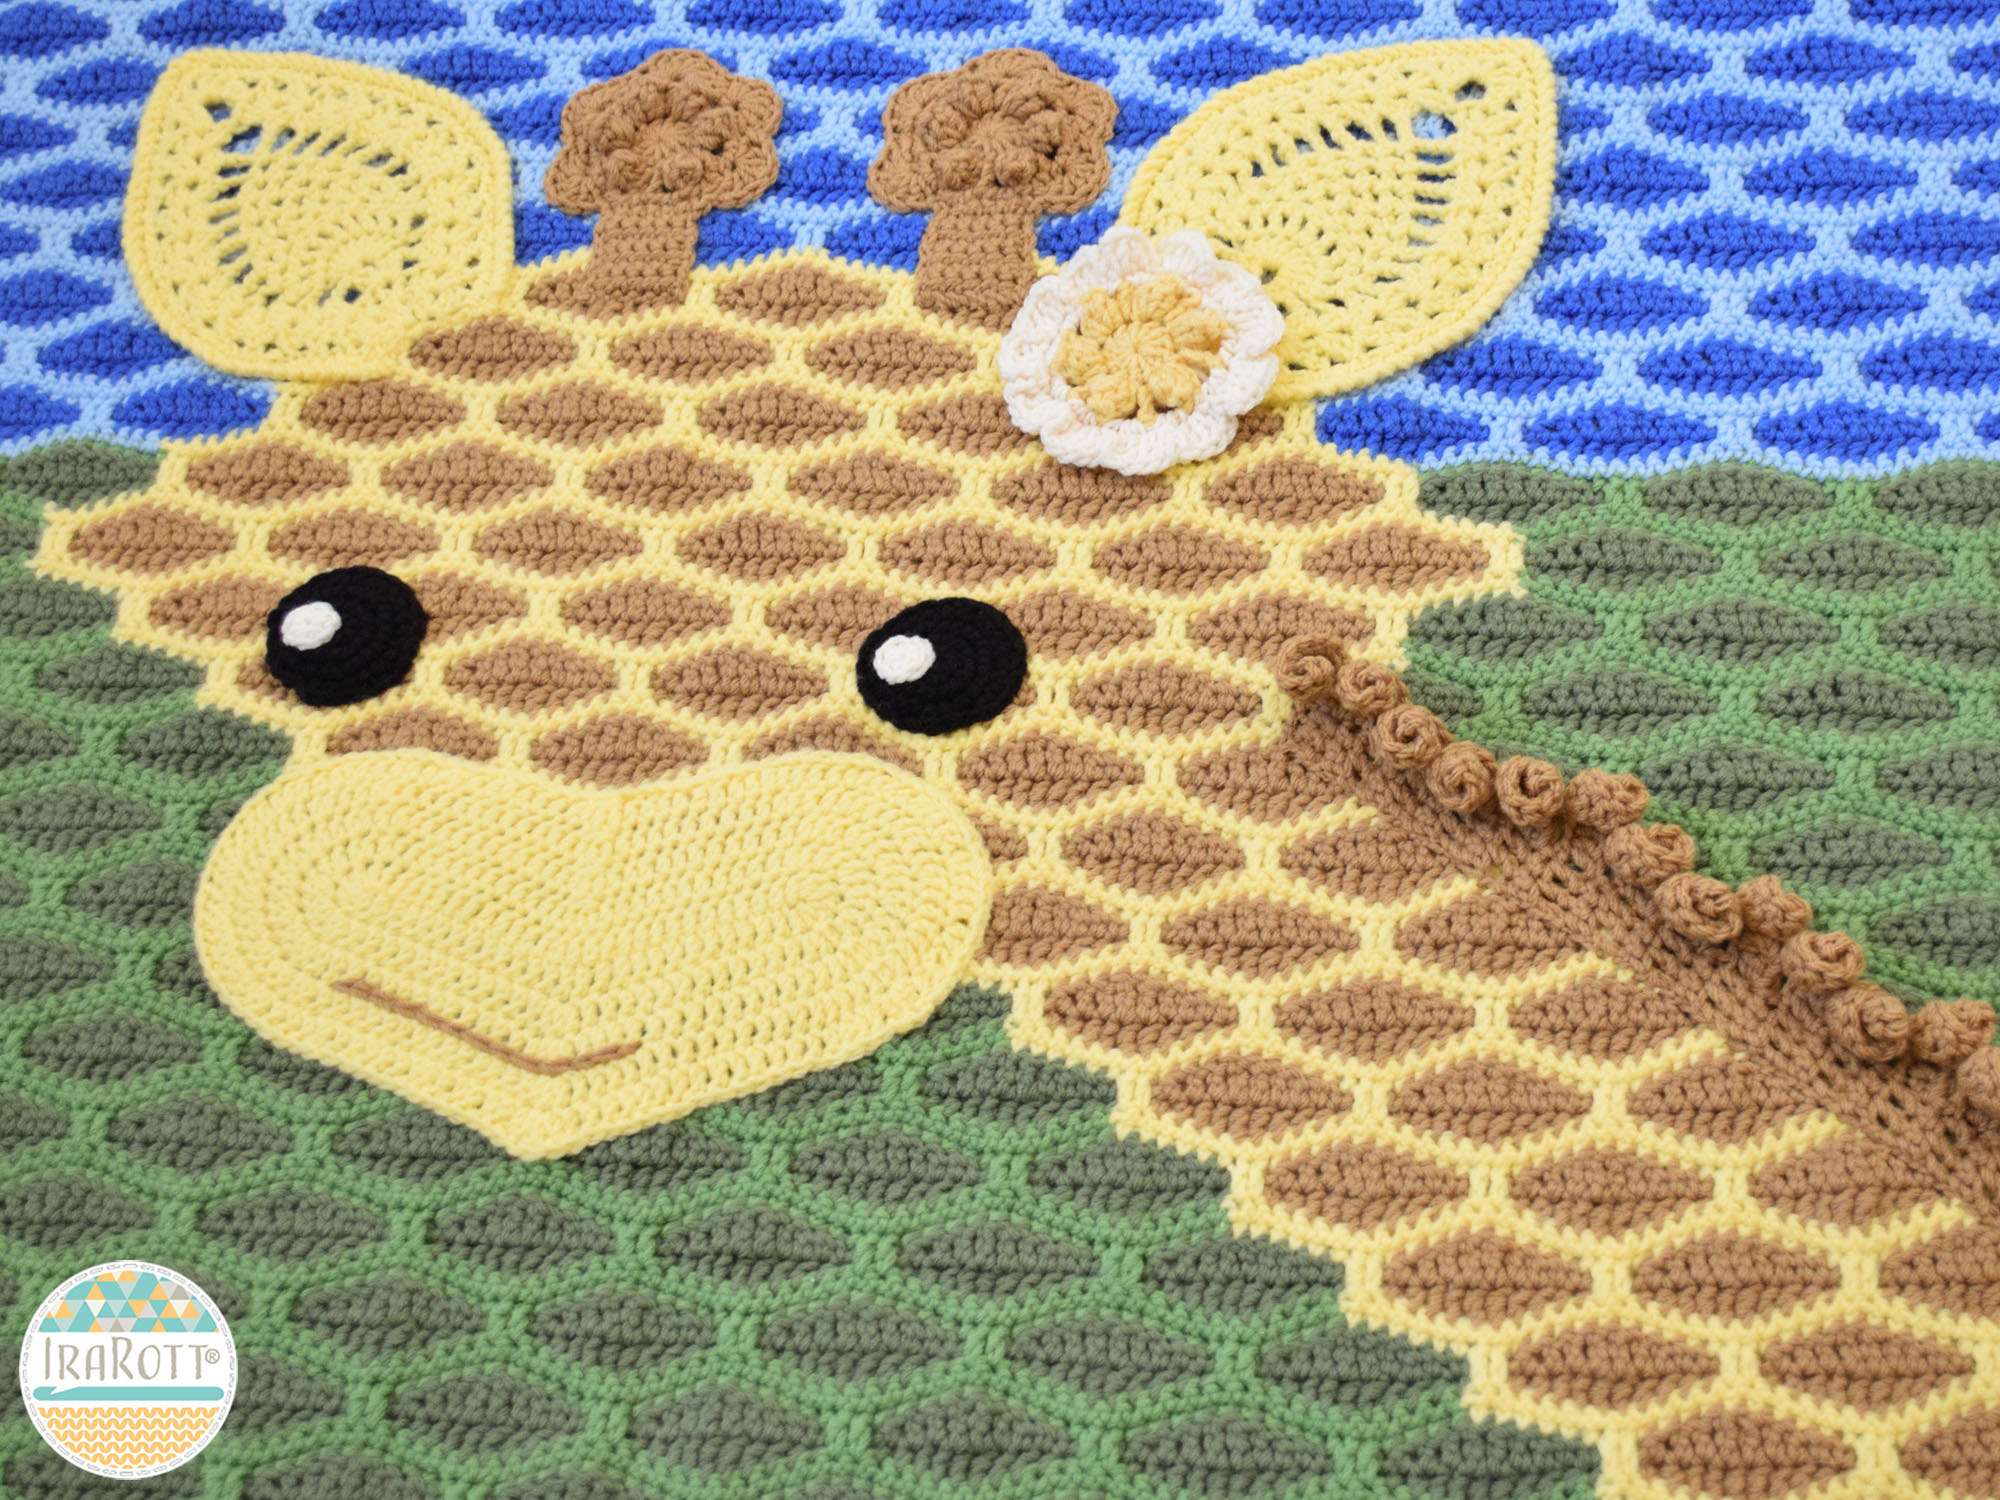 Crochet Pattern Giraffe Blanket : Rusty the Giraffe Blanket PDF Crochet Pattern - IraRott Inc.